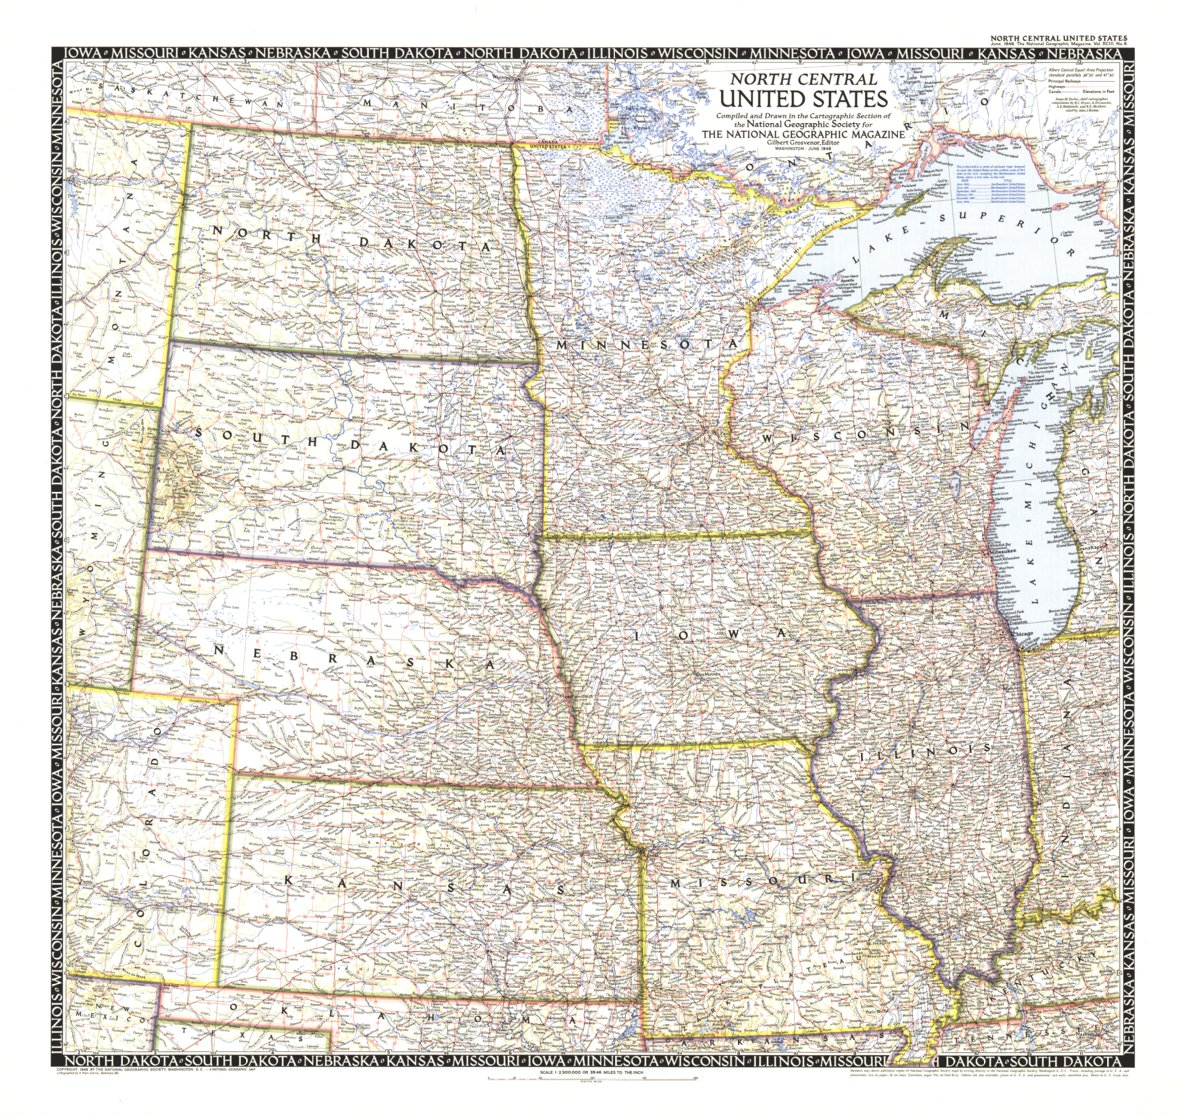 North Central United States Map 1948 - National Geographic - Avenza Maps